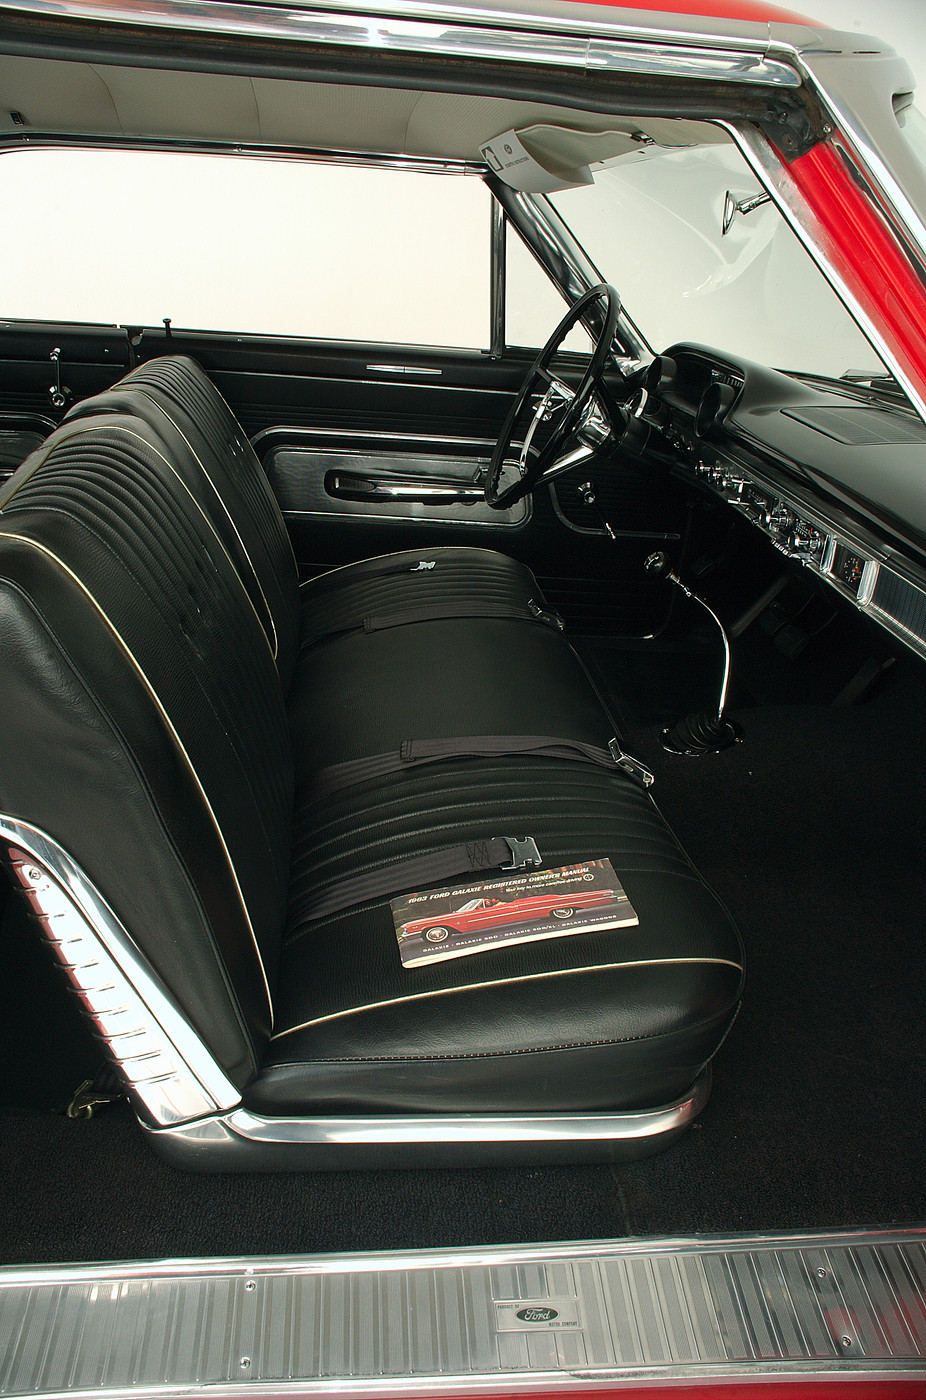 1963 Ford Galaxie 500 XL 427 R-code passenger-side vertical interior view with owner's manual